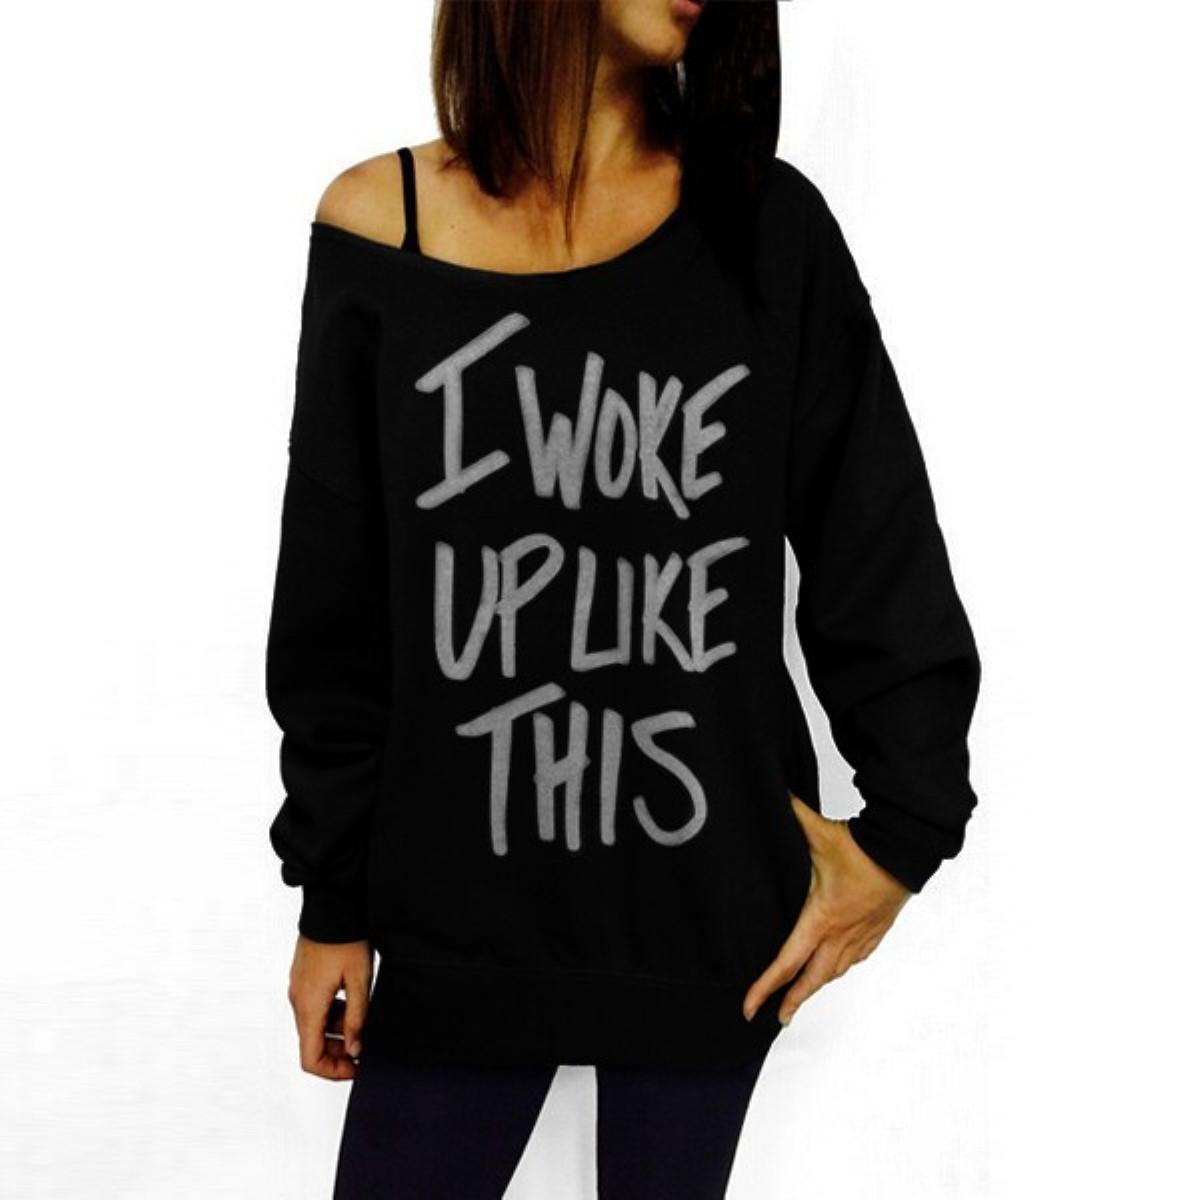 2018 Wholesale I Woke Up Like This T Shirt Casual Spring Cotton